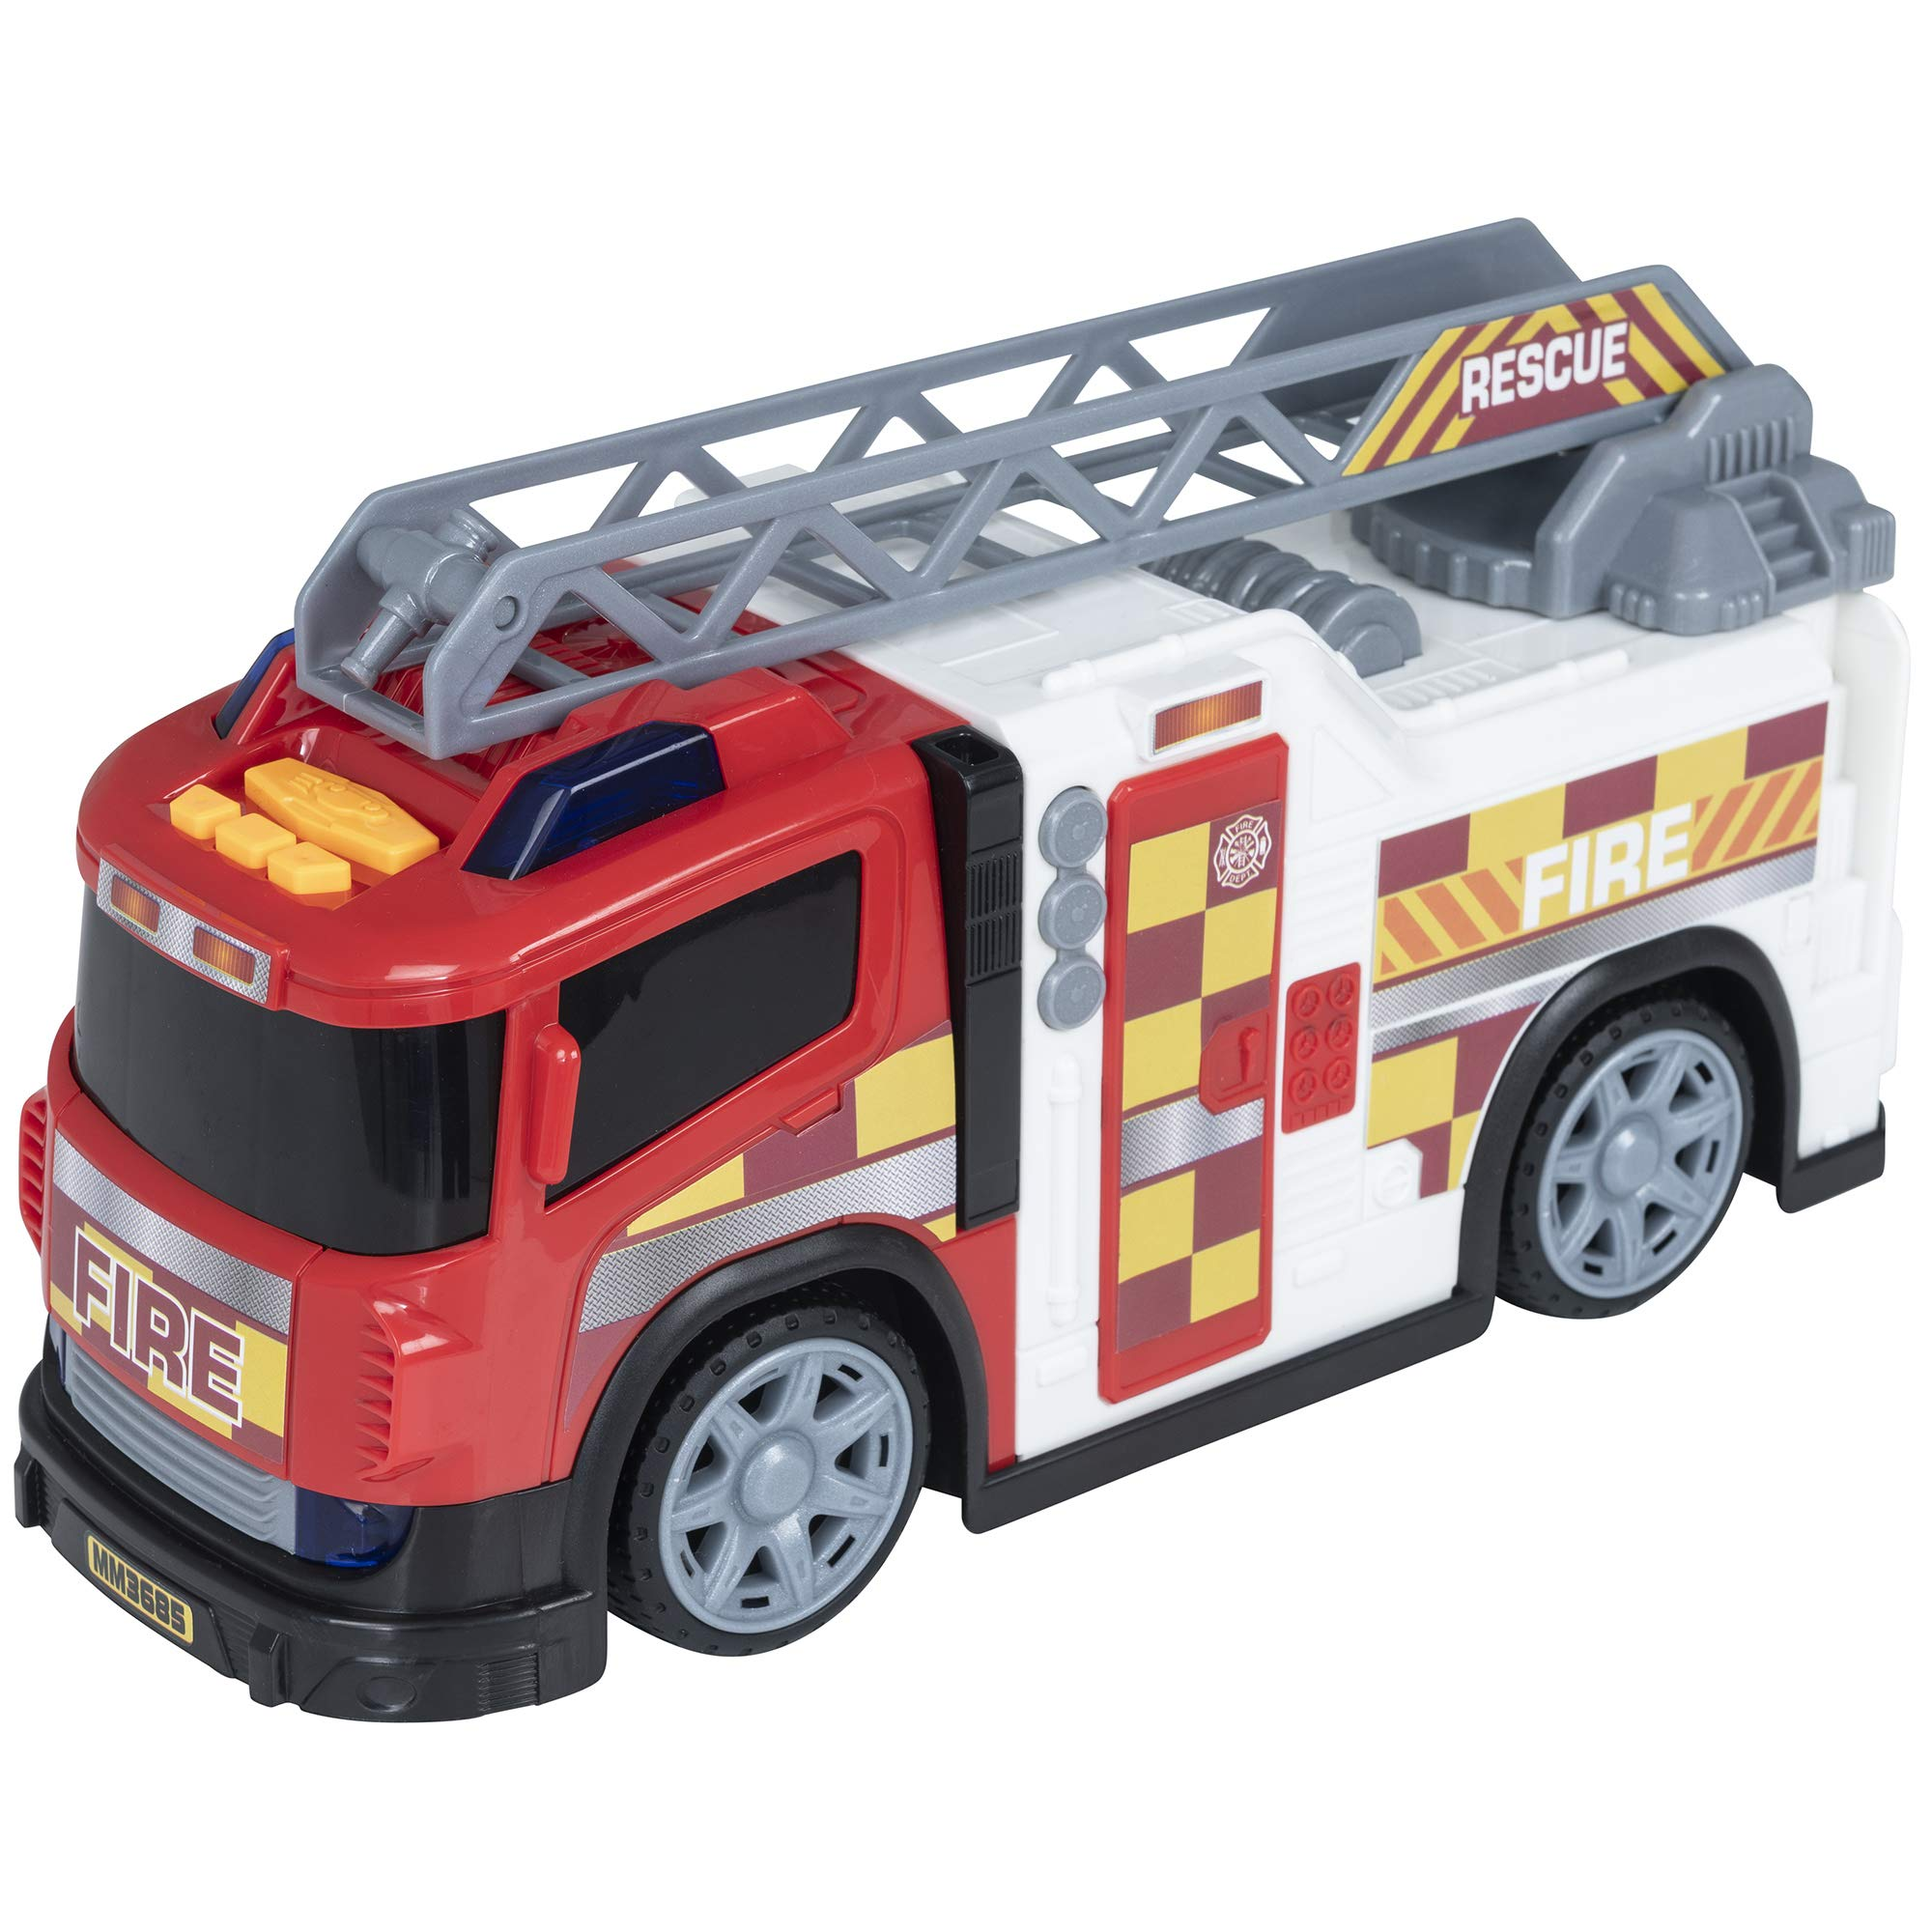 teamsterz city emergency vehicle Fire And Rescue